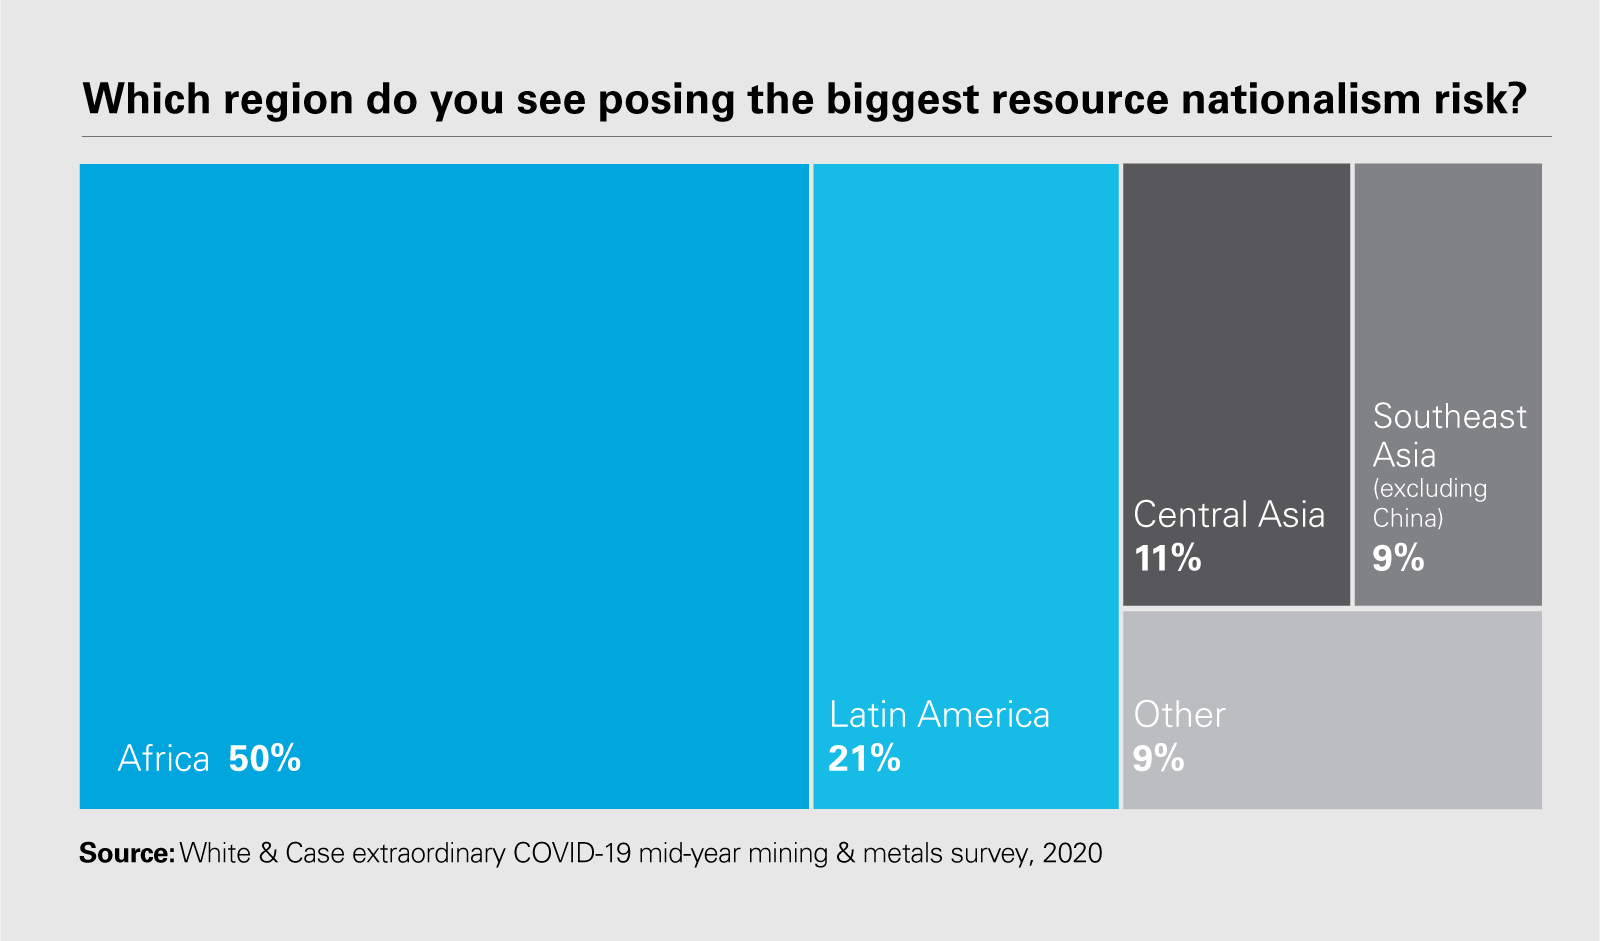 Which region do you see posing the biggest resource nationalism risk?